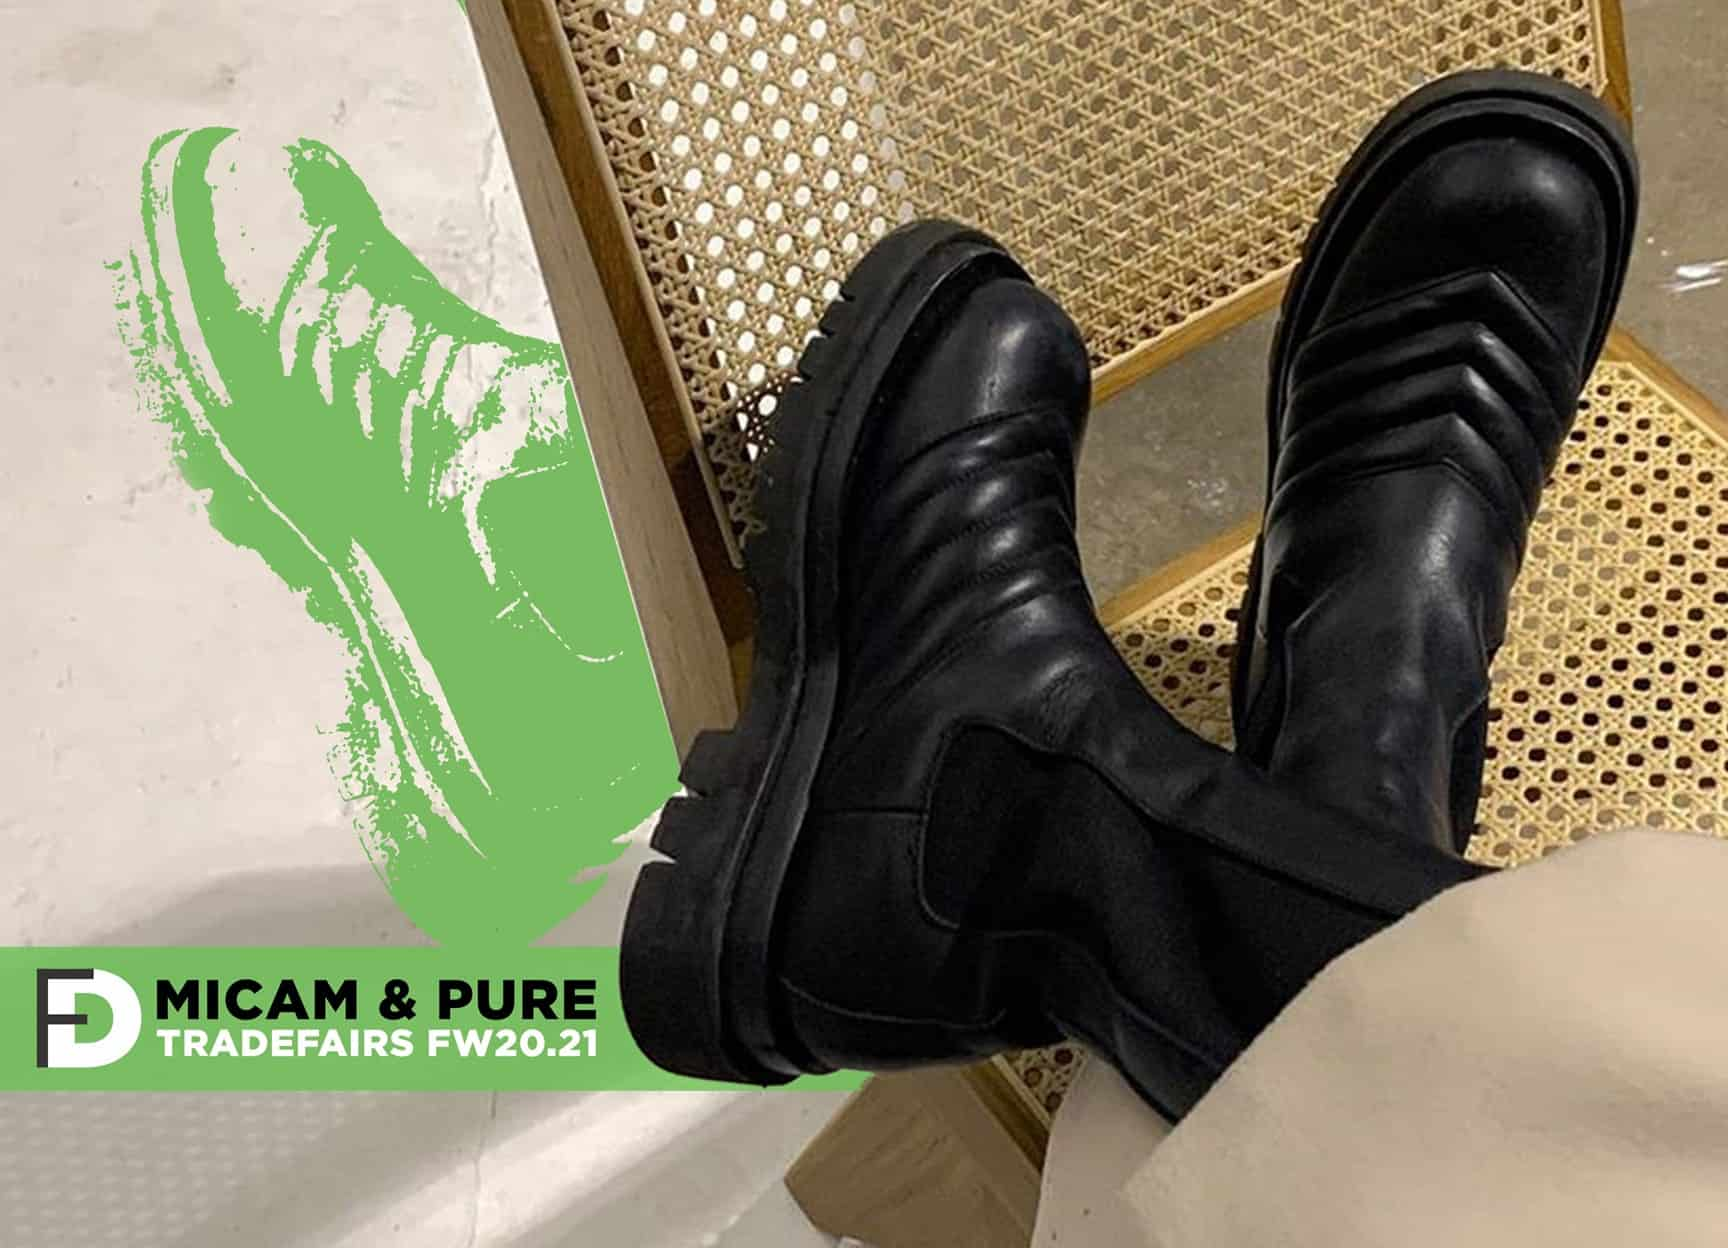 1 FW20.21 Tradefairs Micam 1 boots heavy soles